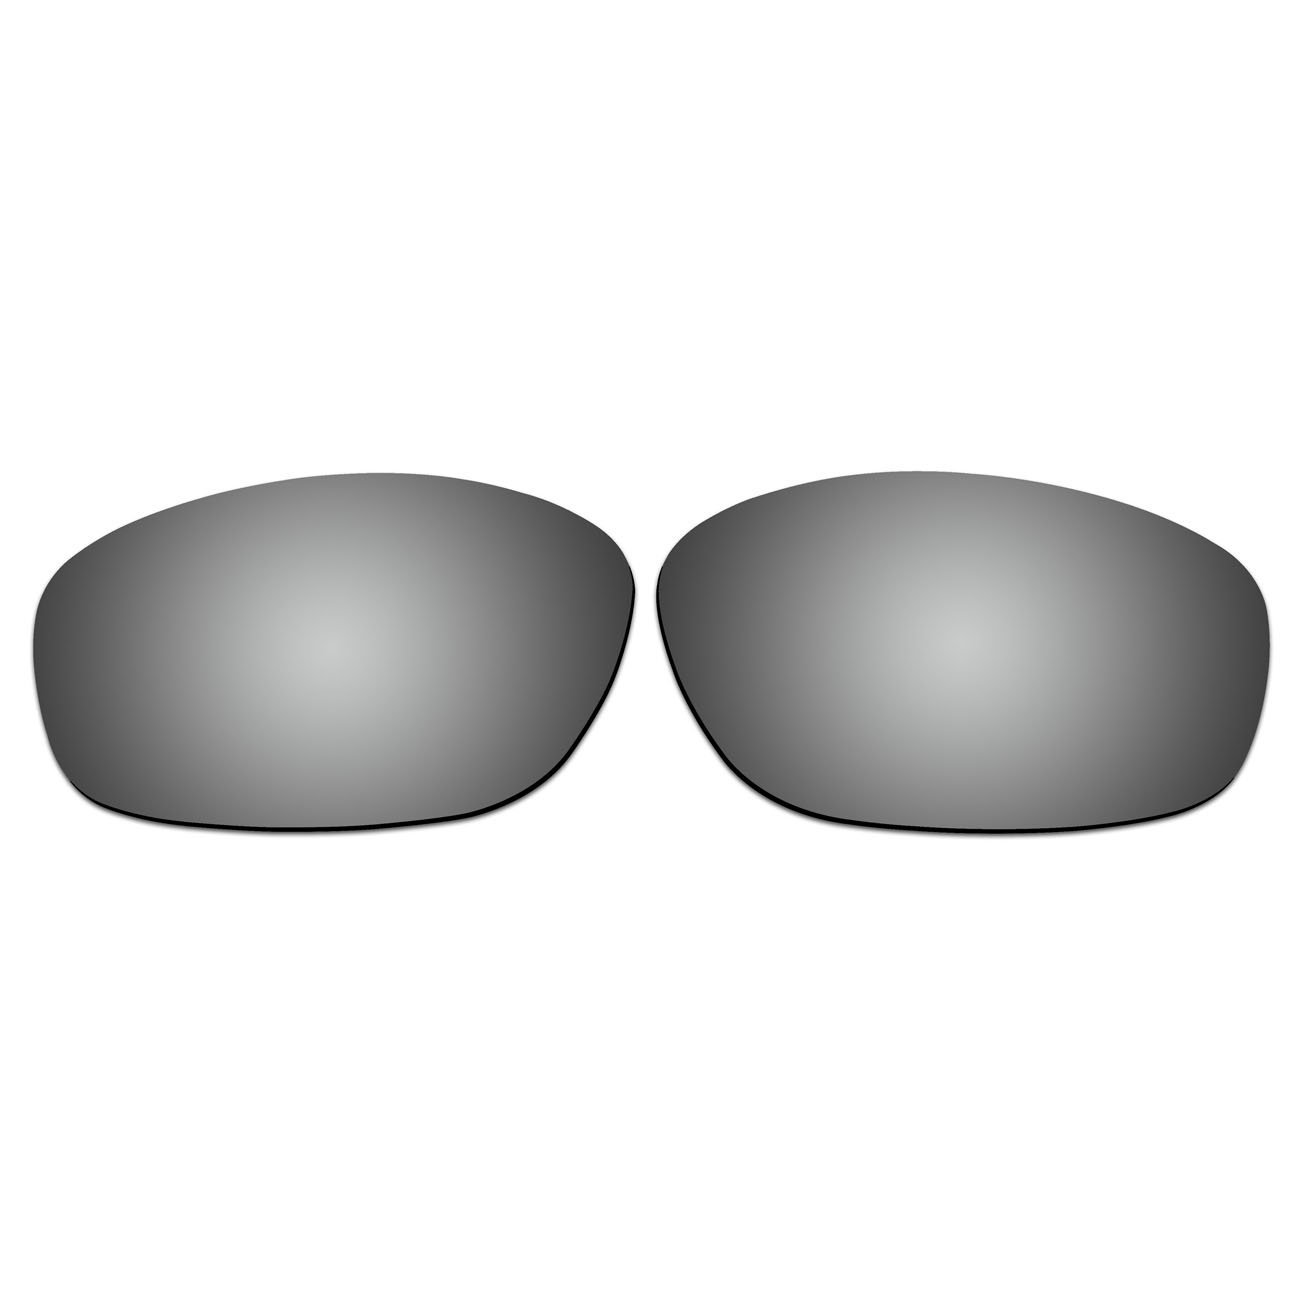 5b0047a21985 Get Quotations · ACOMPATIBLE Replacement Lenses for Ray-Ban RB4115 57mm  Sunglasses